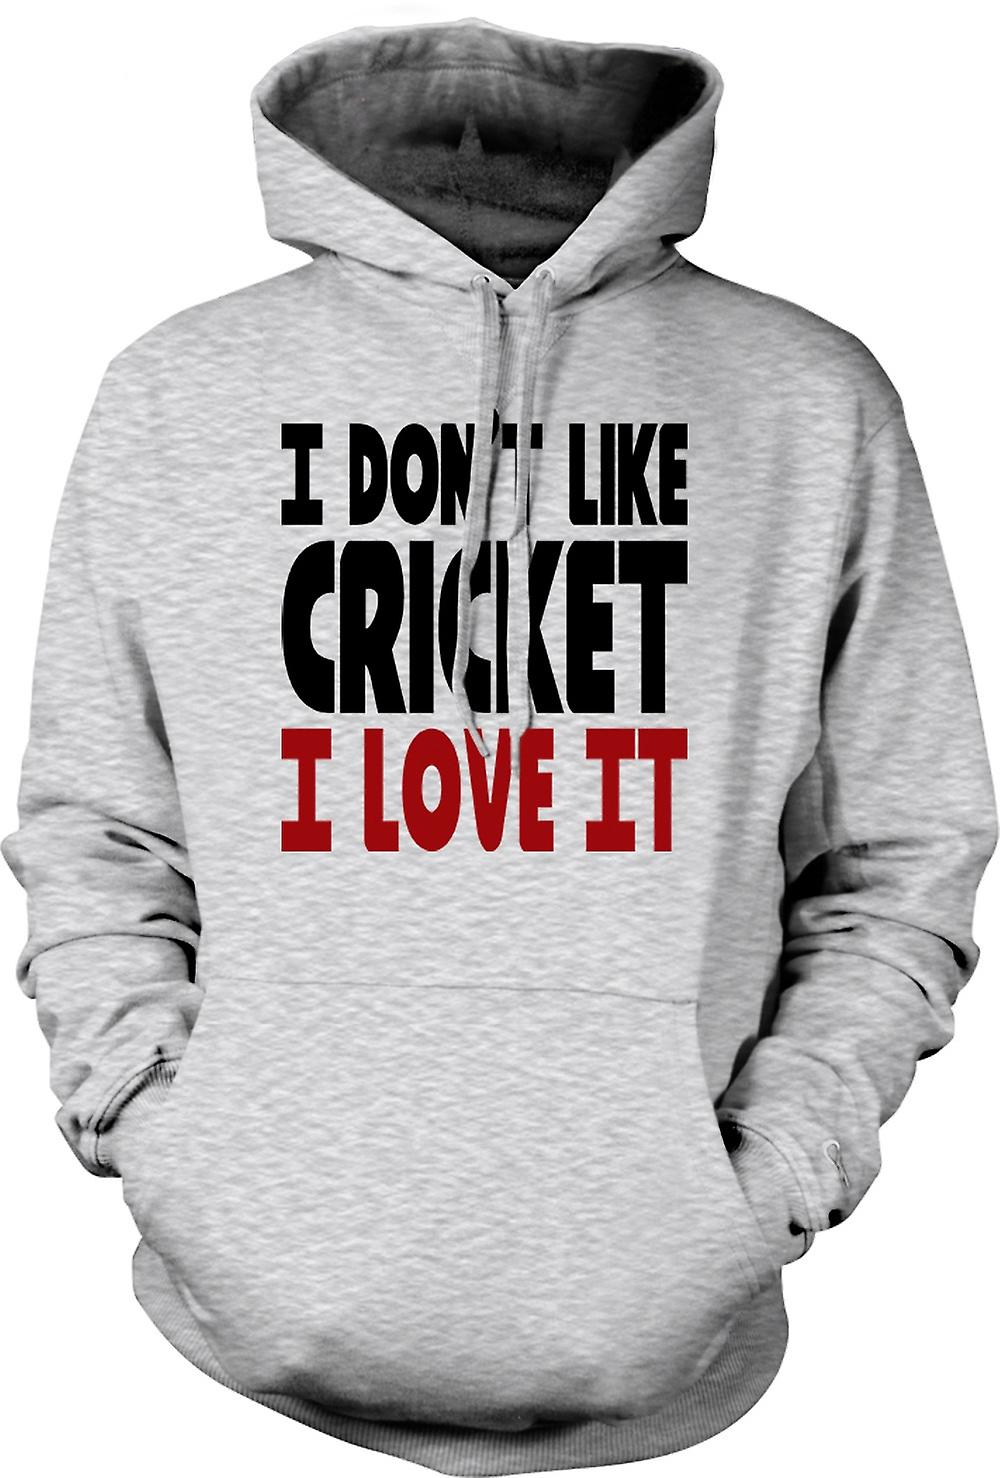 Mens Hoodie - I Don't Like Cricket, I Love It - Funny